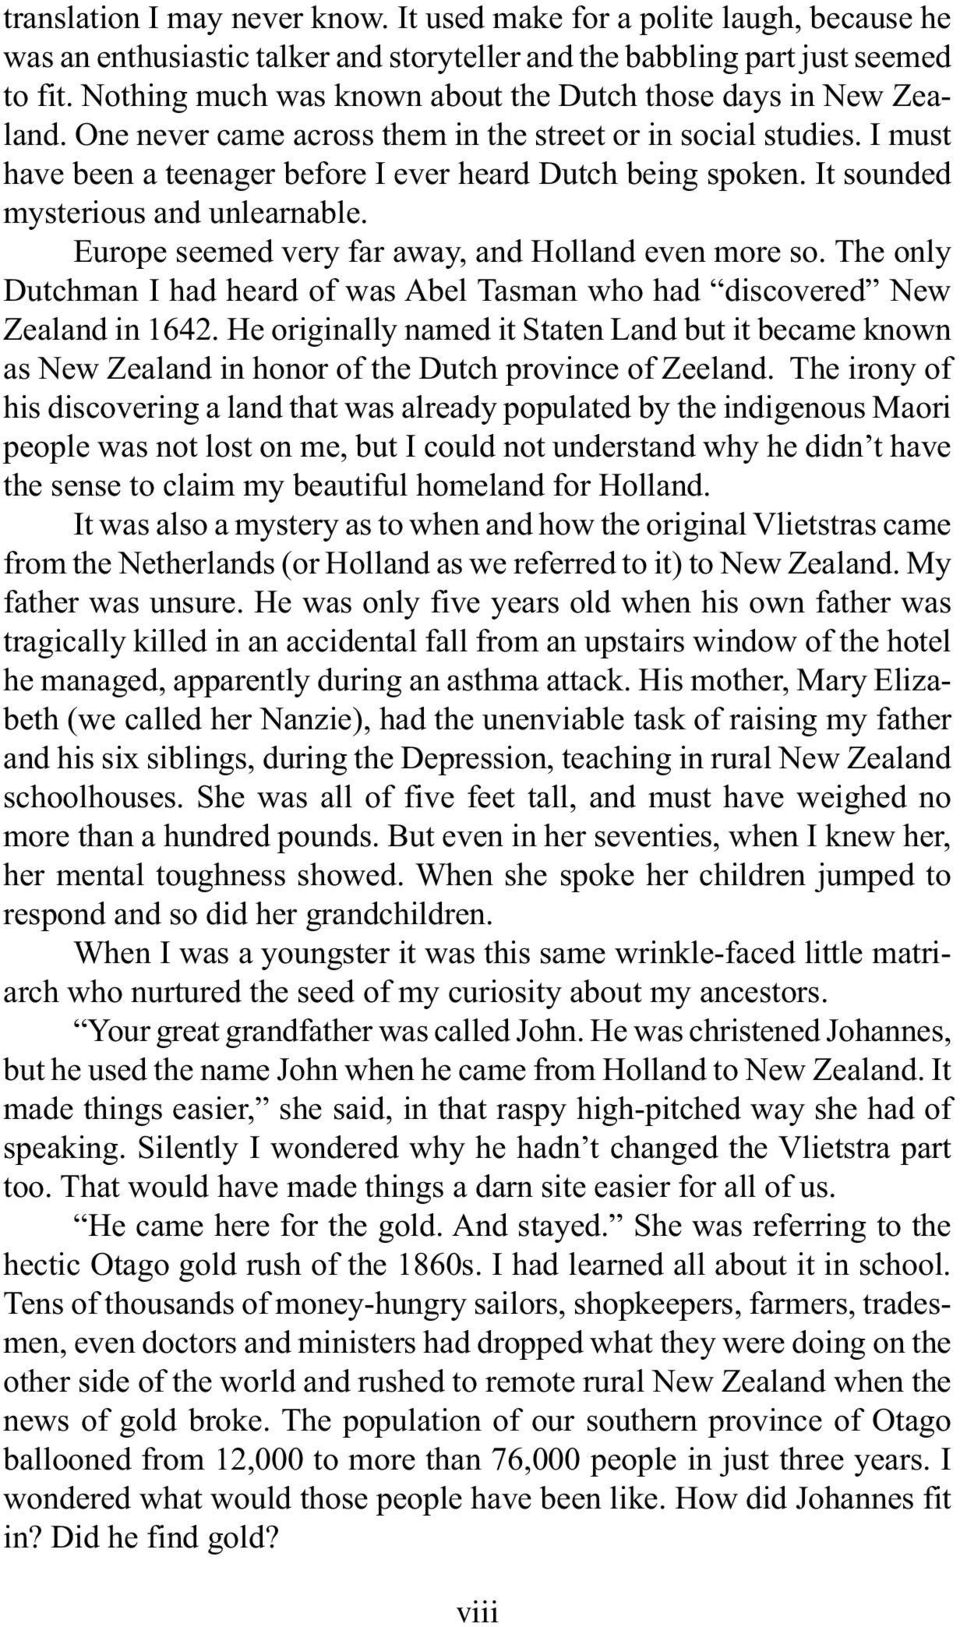 It sounded mysterious and unlearnable. Europe seemed very far away, and Holland even more so. The only Dutchman I had heard of was Abel Tasman who had discovered New Zealand in 1642.